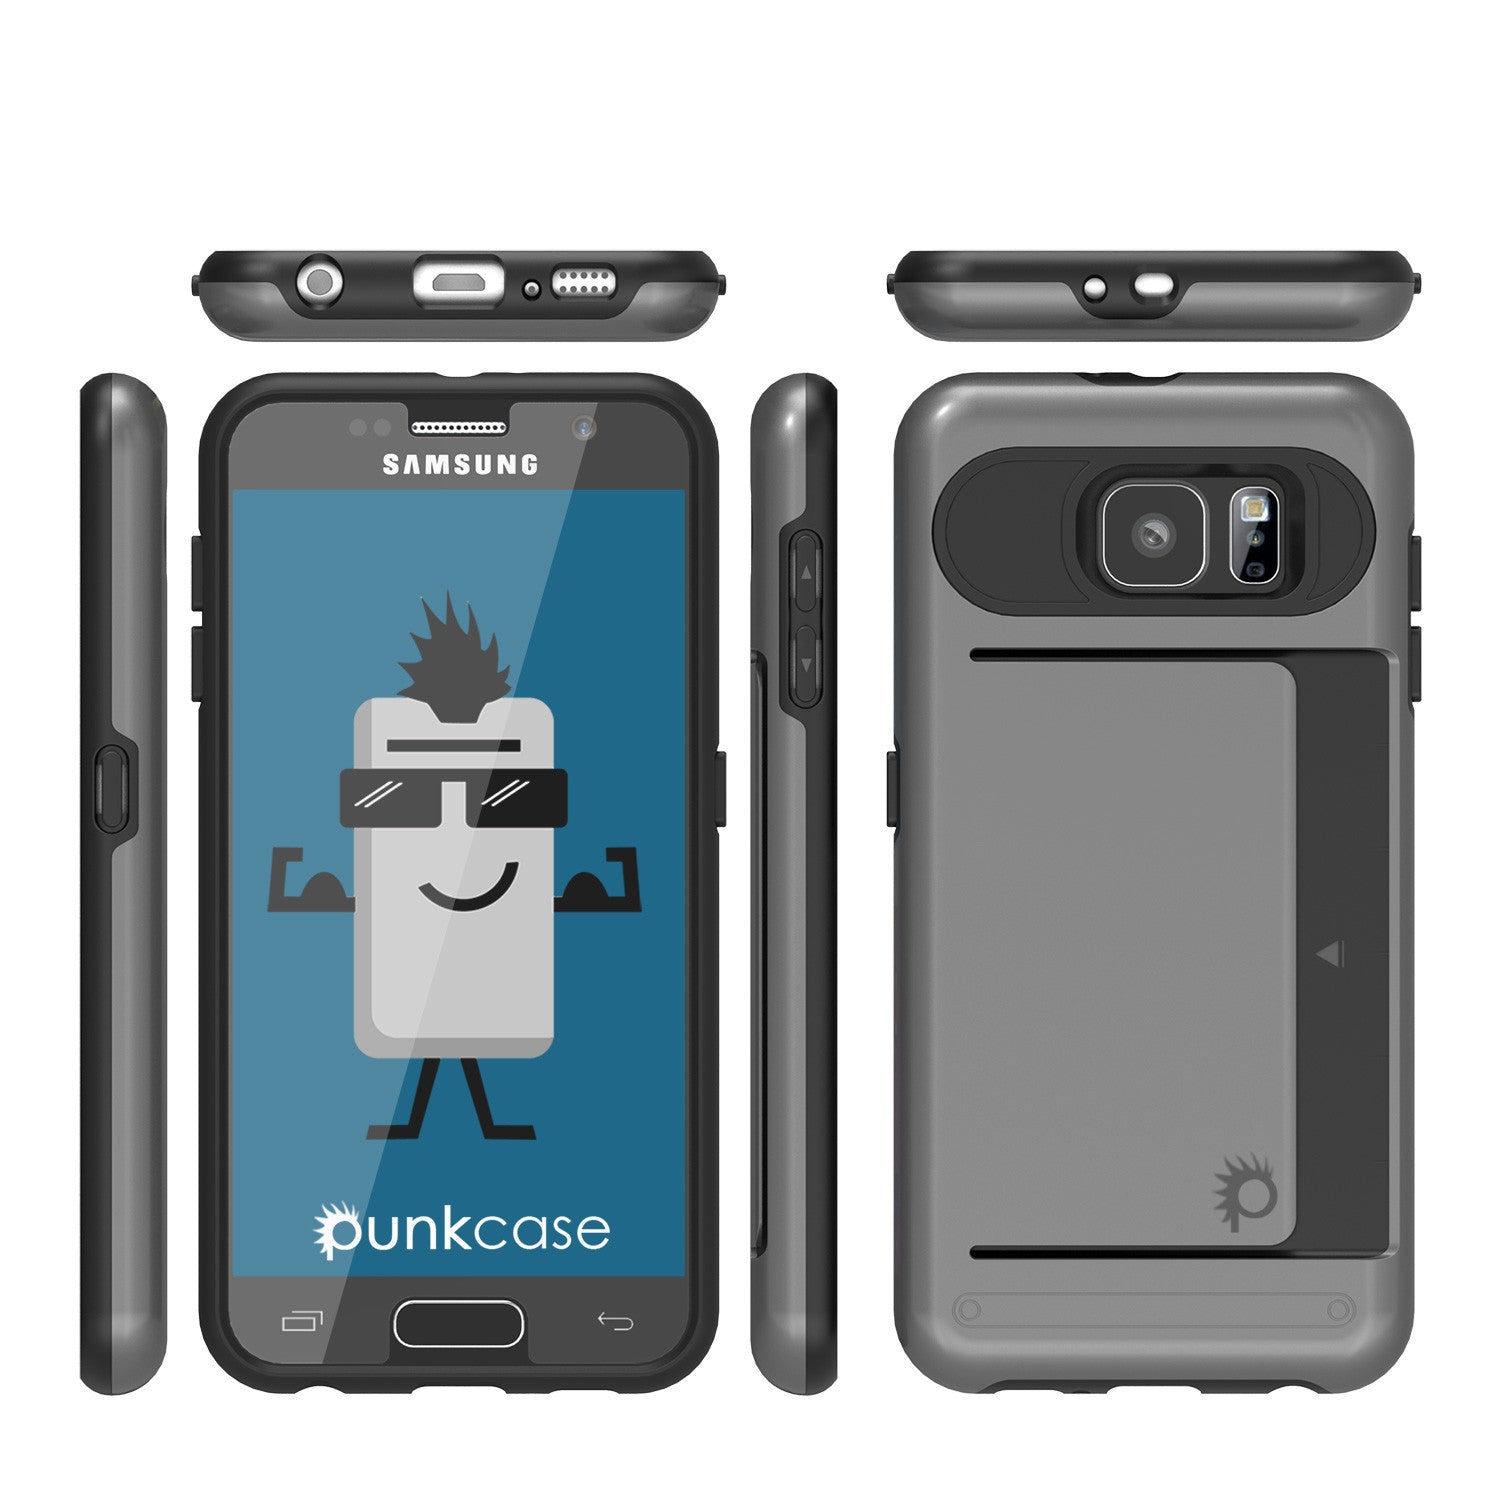 Galaxy S6 EDGE Plus Case PunkCase CLUTCH Grey Series Slim Armor Soft Cover Case w/ Screen Protector